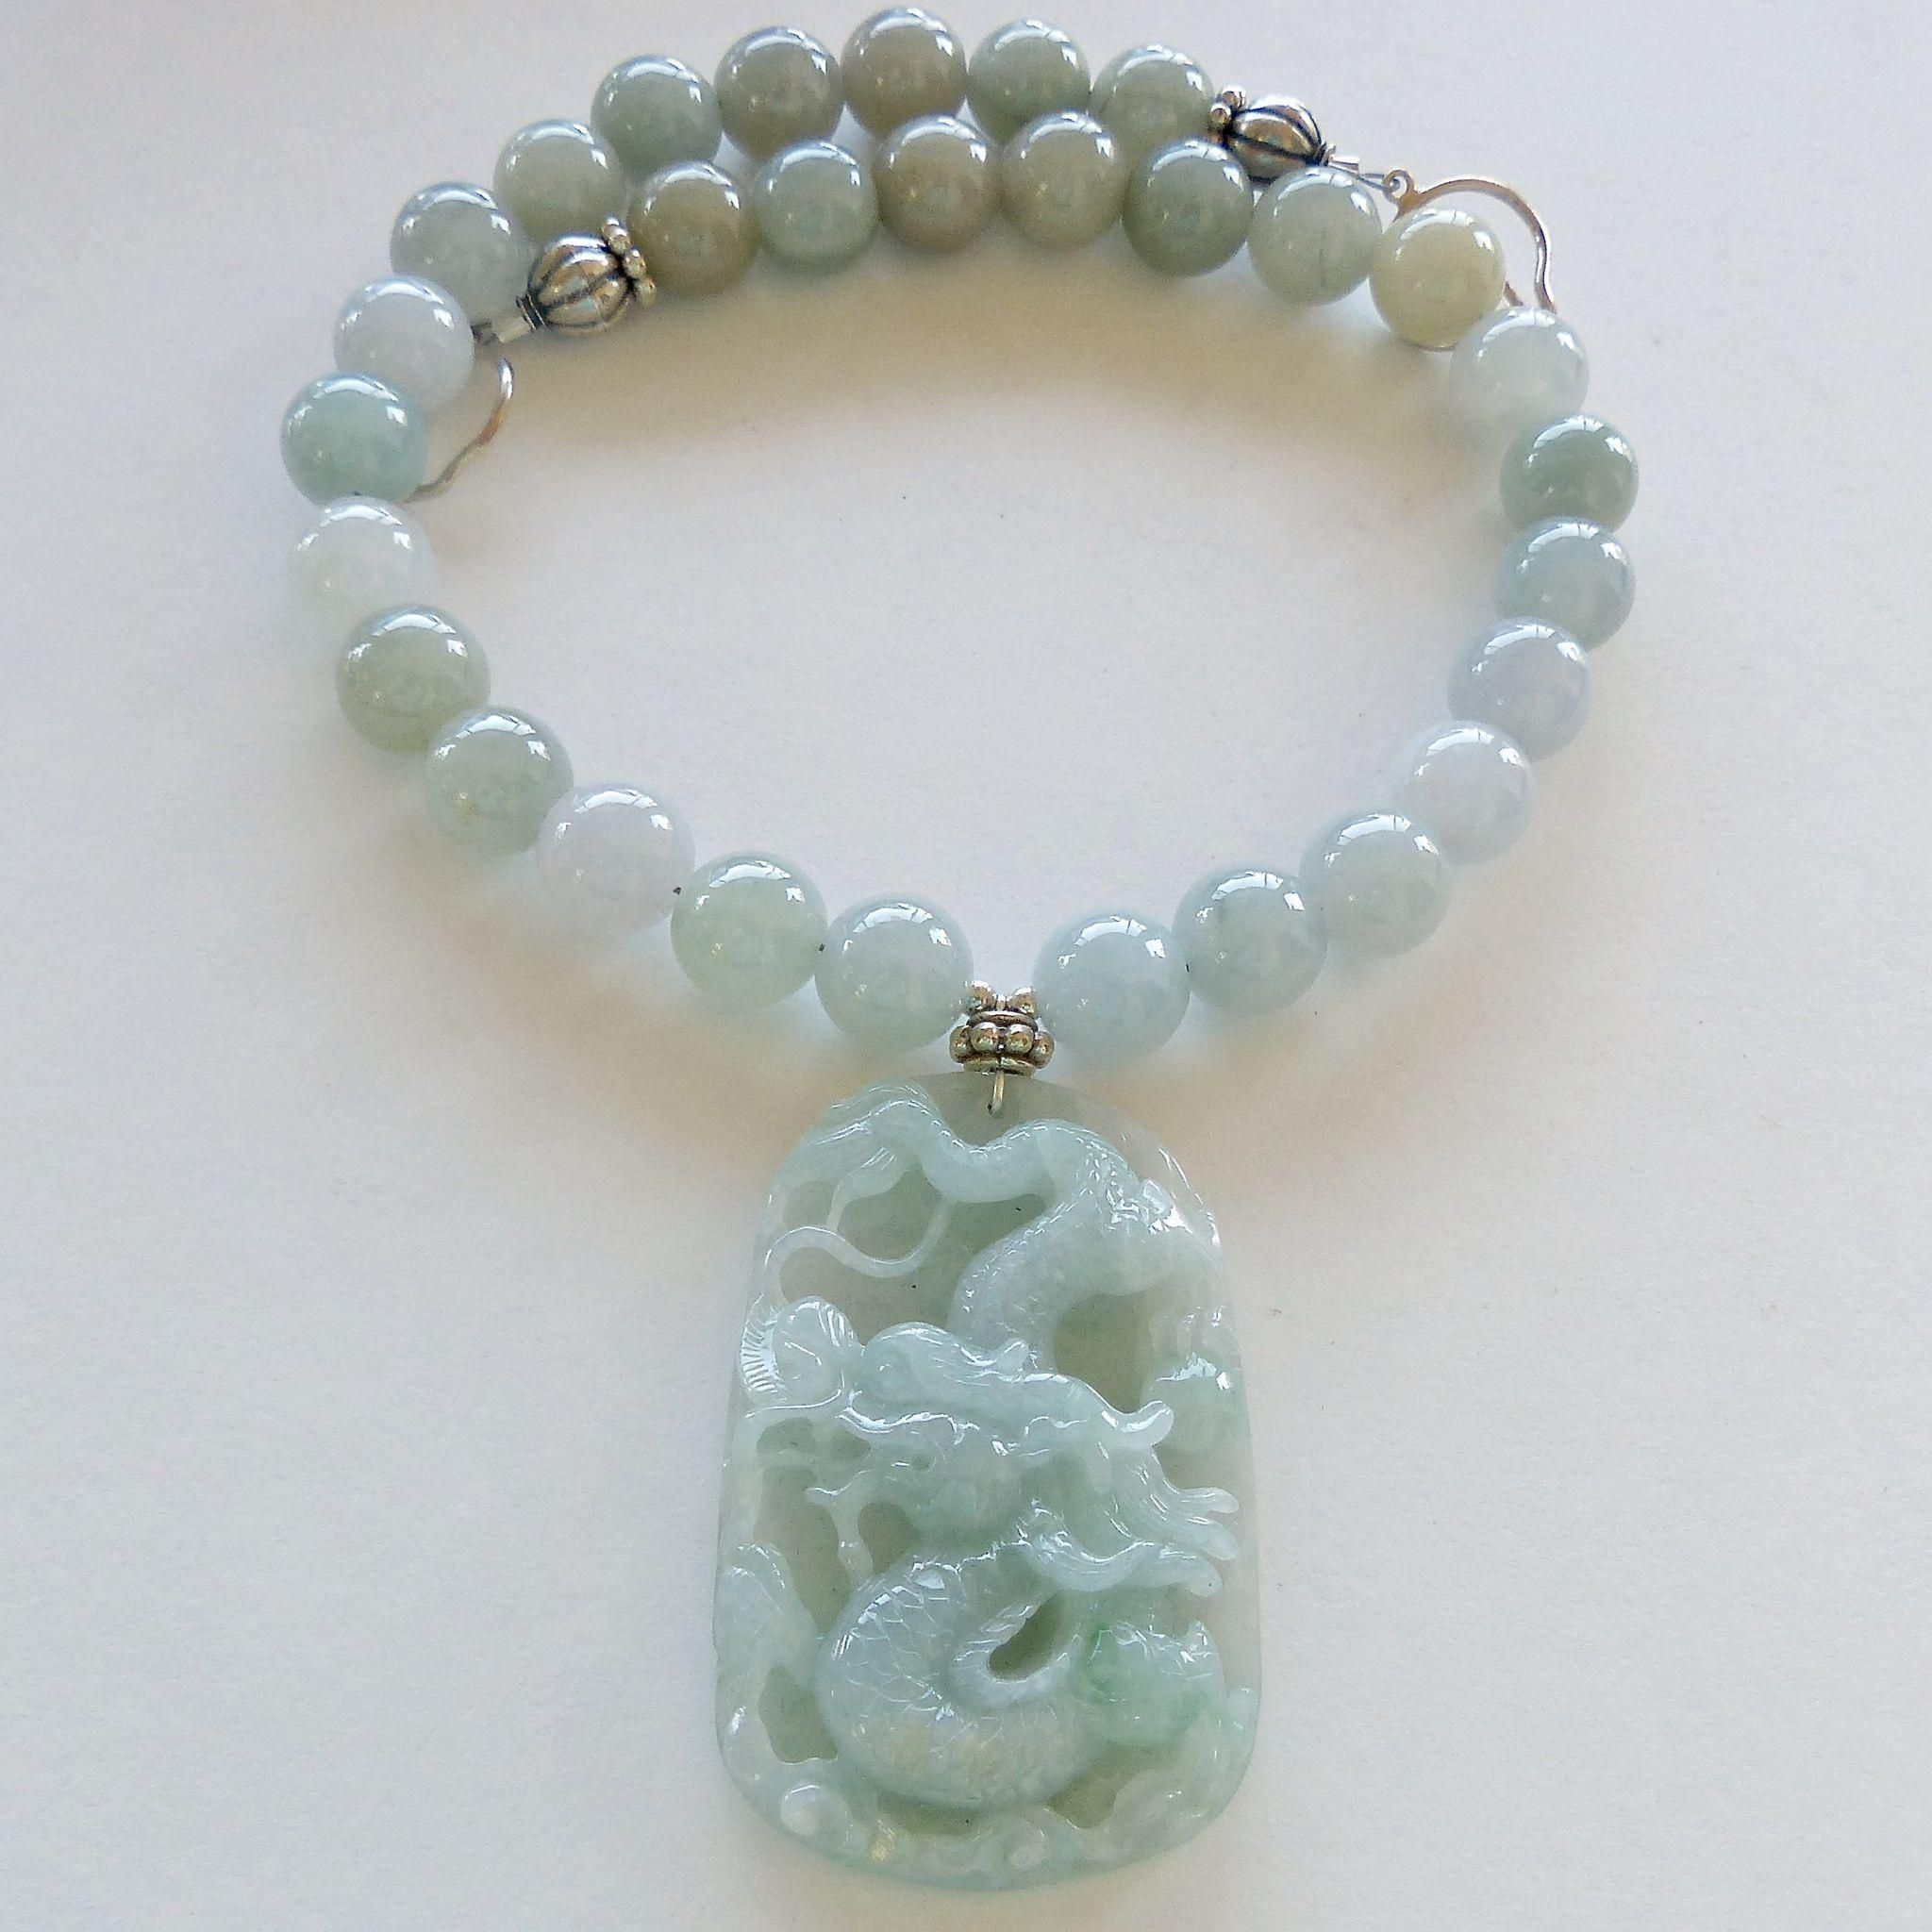 carved linda lee llp natural jade with pendant jewelry necklace products